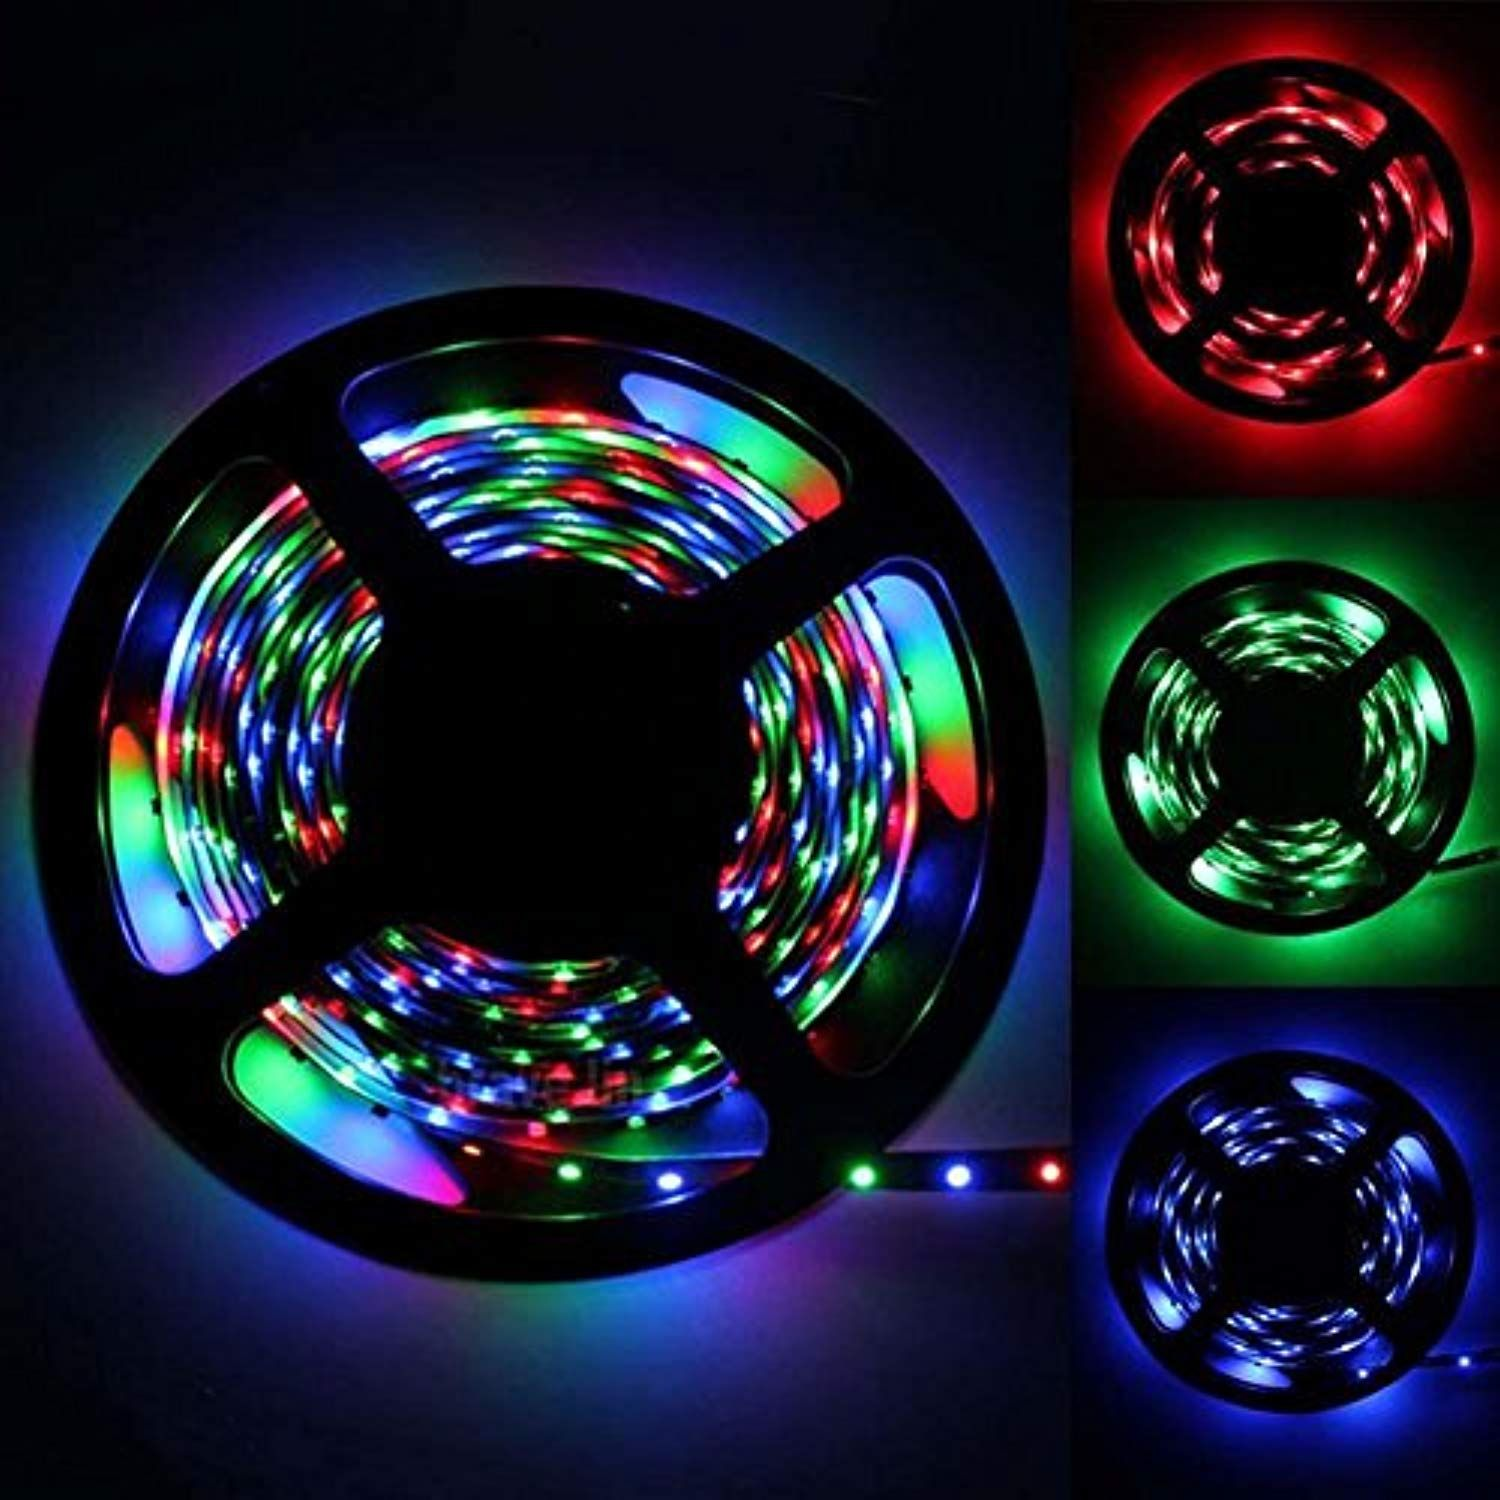 5m 16 4ft Led Flexible Light Strip Rgb 300 Leds Smd 5050 Led Strip Lights Non Waterpoof Light Stri Flexible Led Strip Lights Strip Lighting Led Light Strips